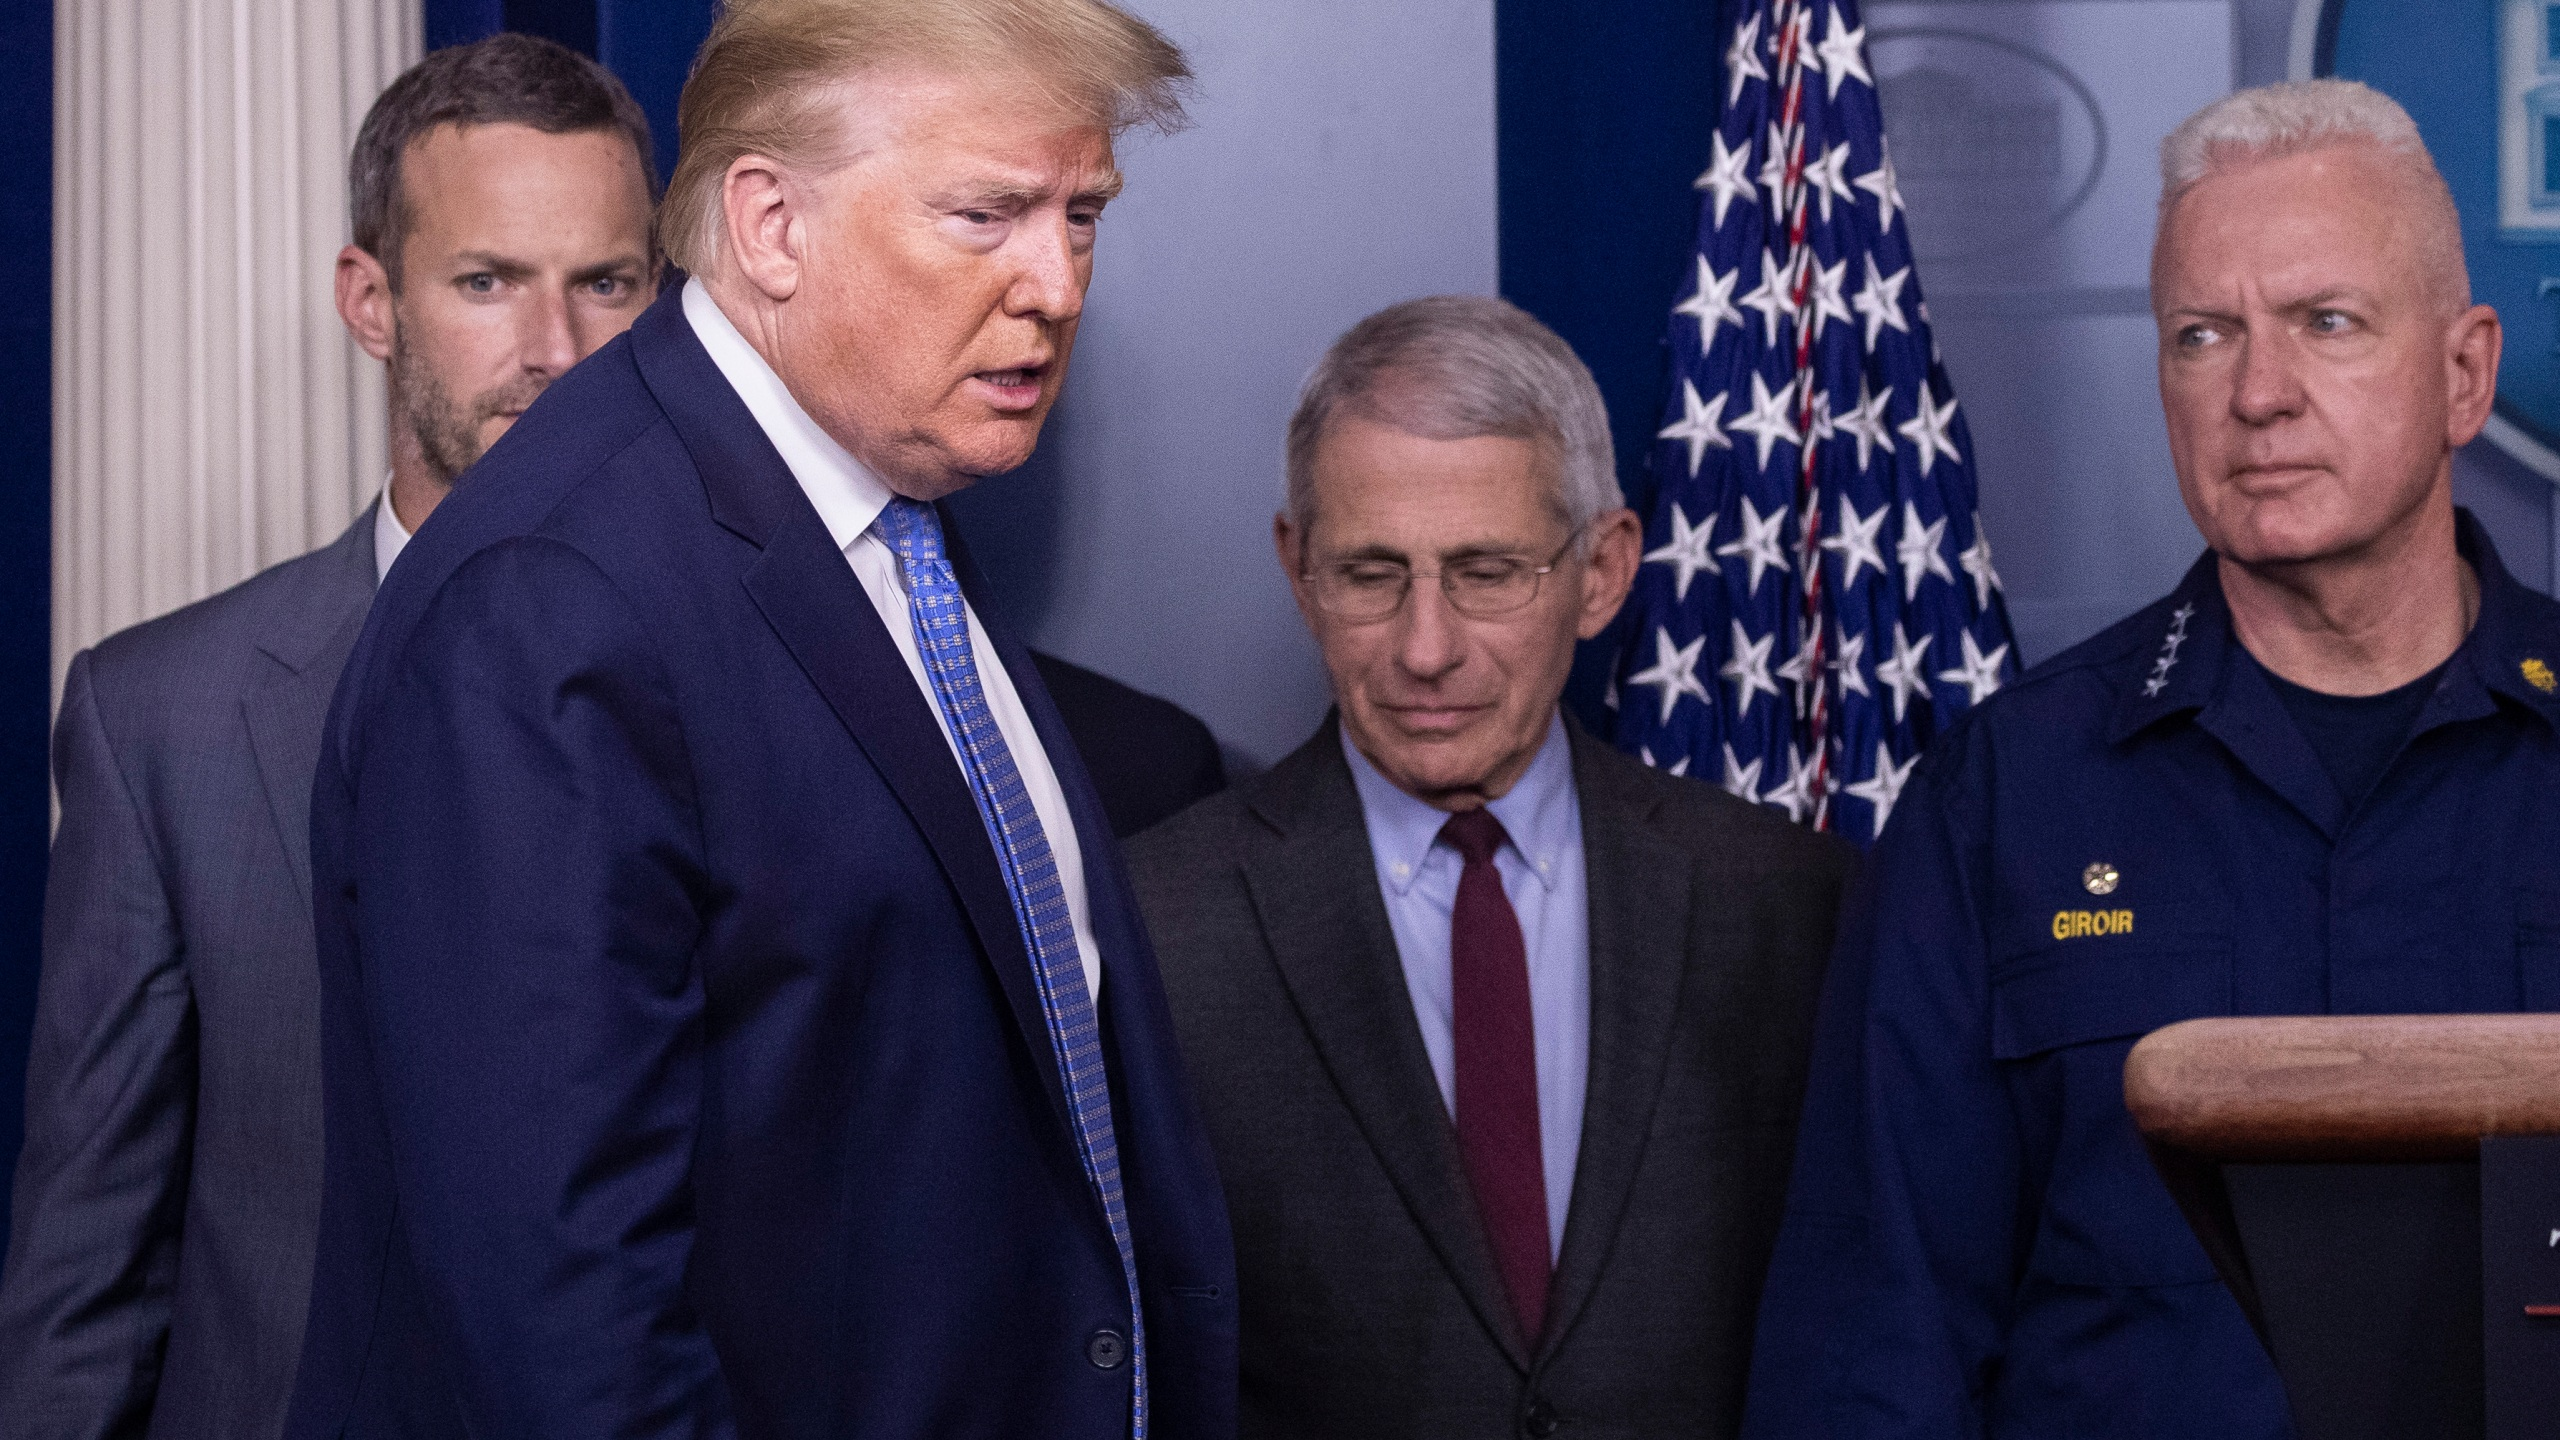 Donald Trump, Anthony Fauci, Brett Giroir